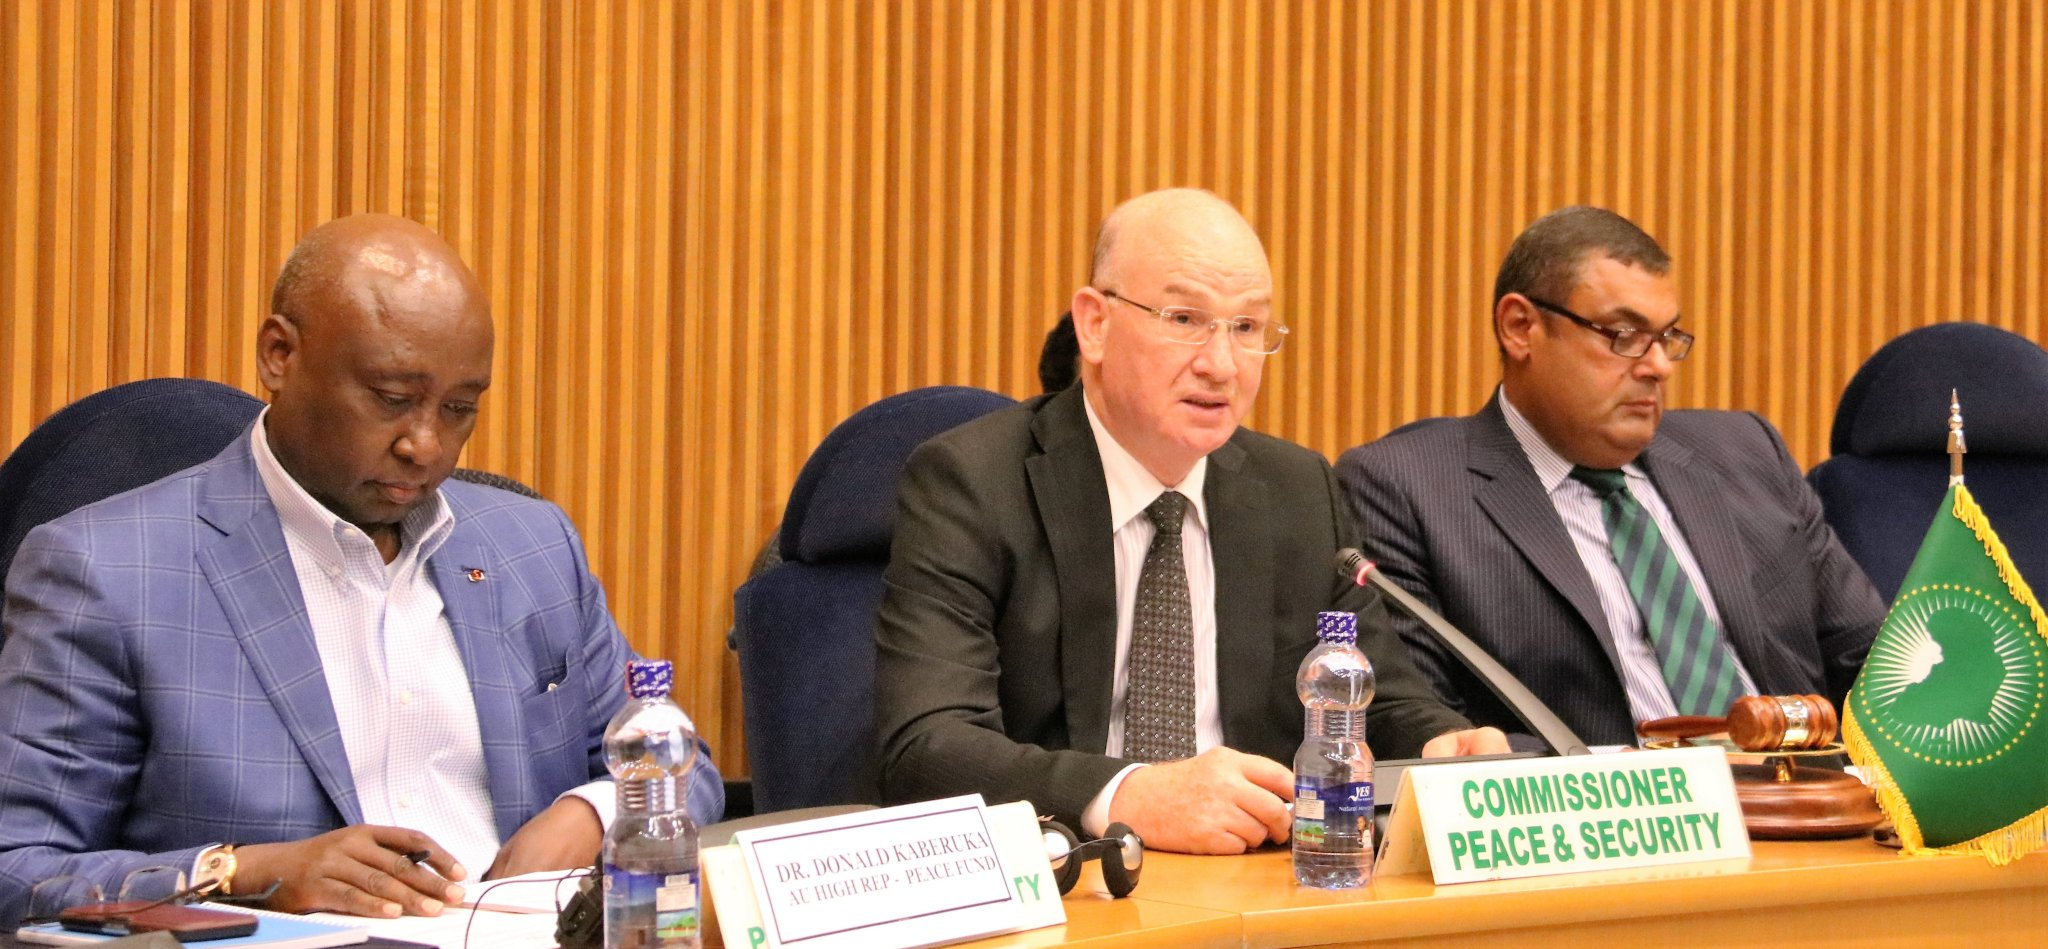 Dr. Donald Kaberuka (left), Ambassador Smail Chergui  (center) and PSC Chair Egypt Ambassador Hefny during the  621th meeting, held on 5 September 2016.